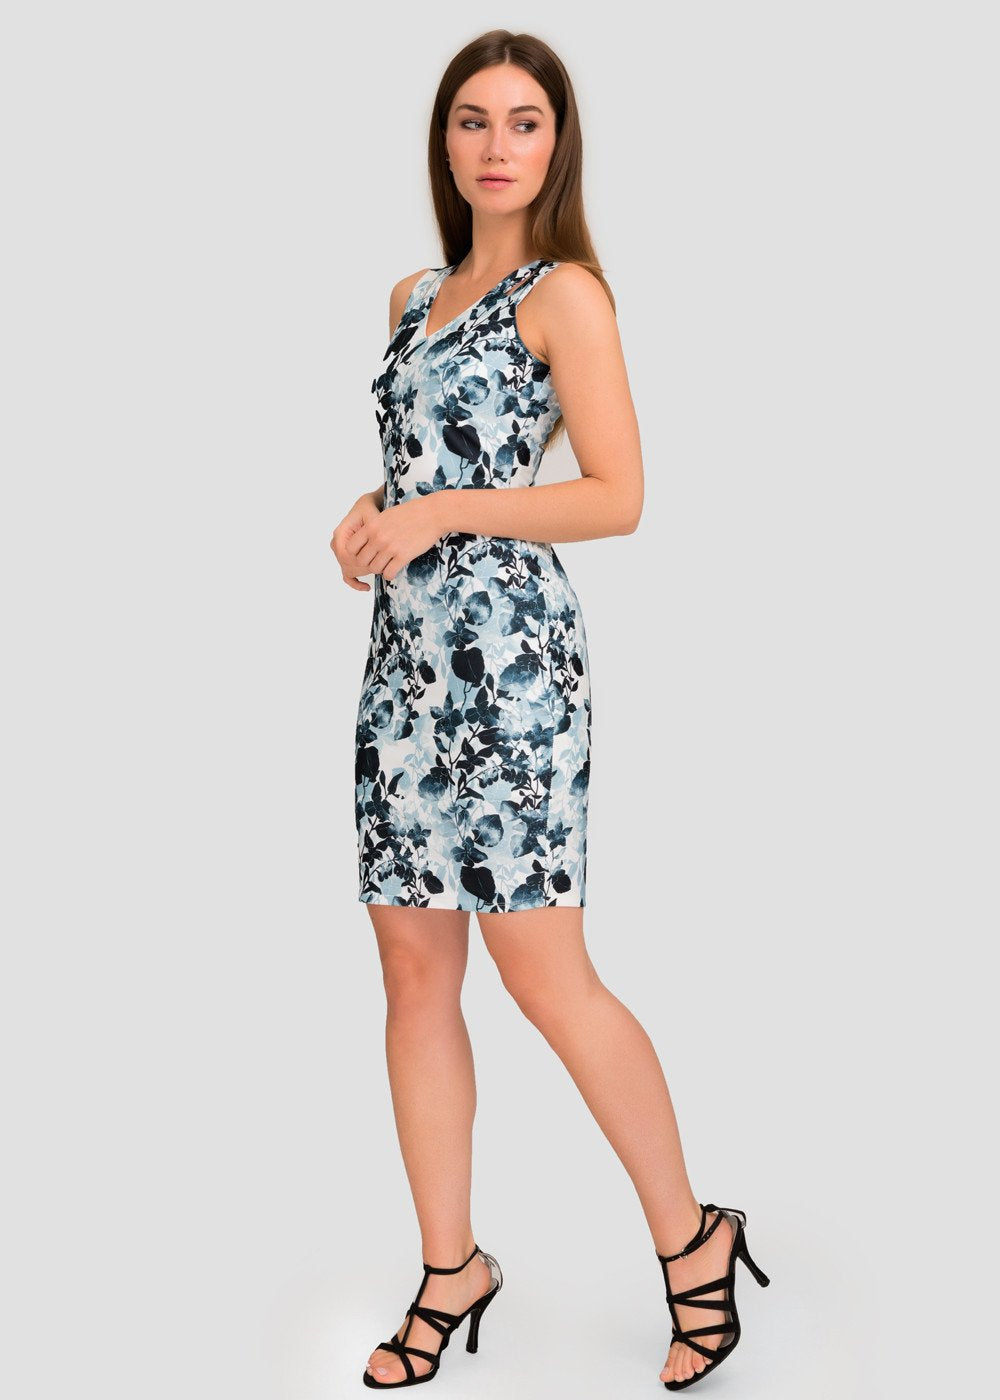 V-neck Floral Bodycon Dress